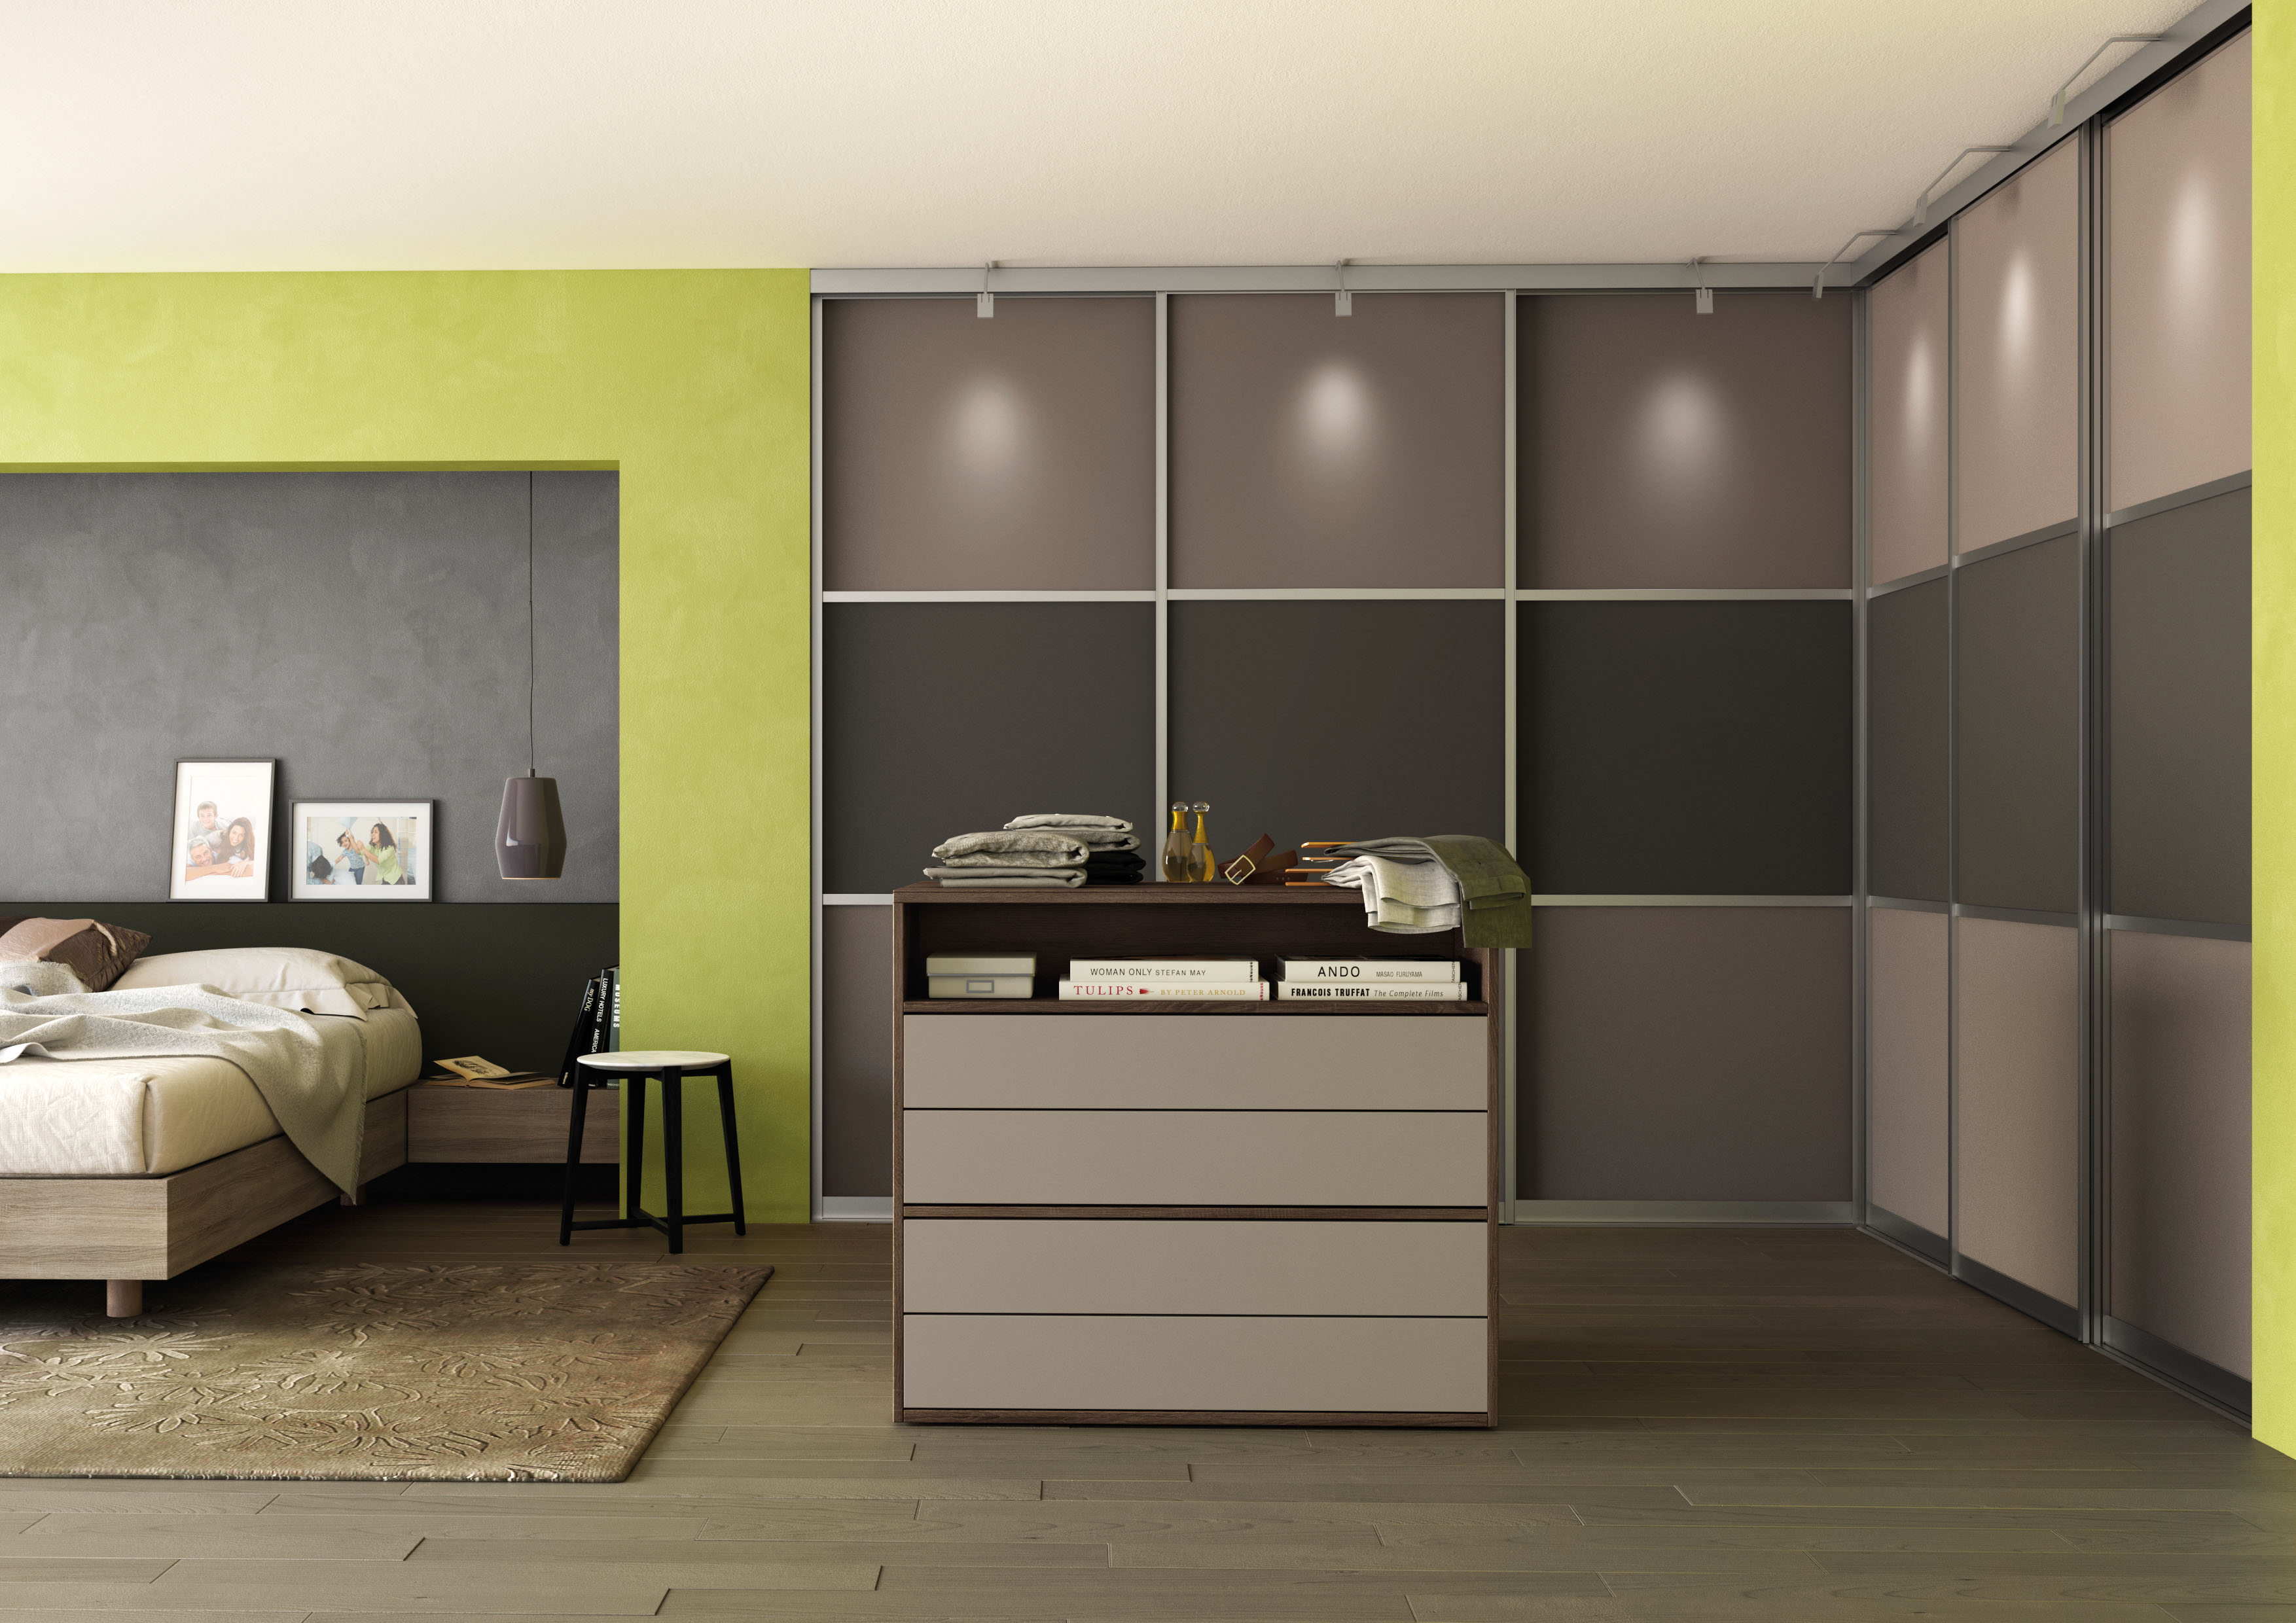 combien coute un placard sur mesure tarif pose placard. Black Bedroom Furniture Sets. Home Design Ideas